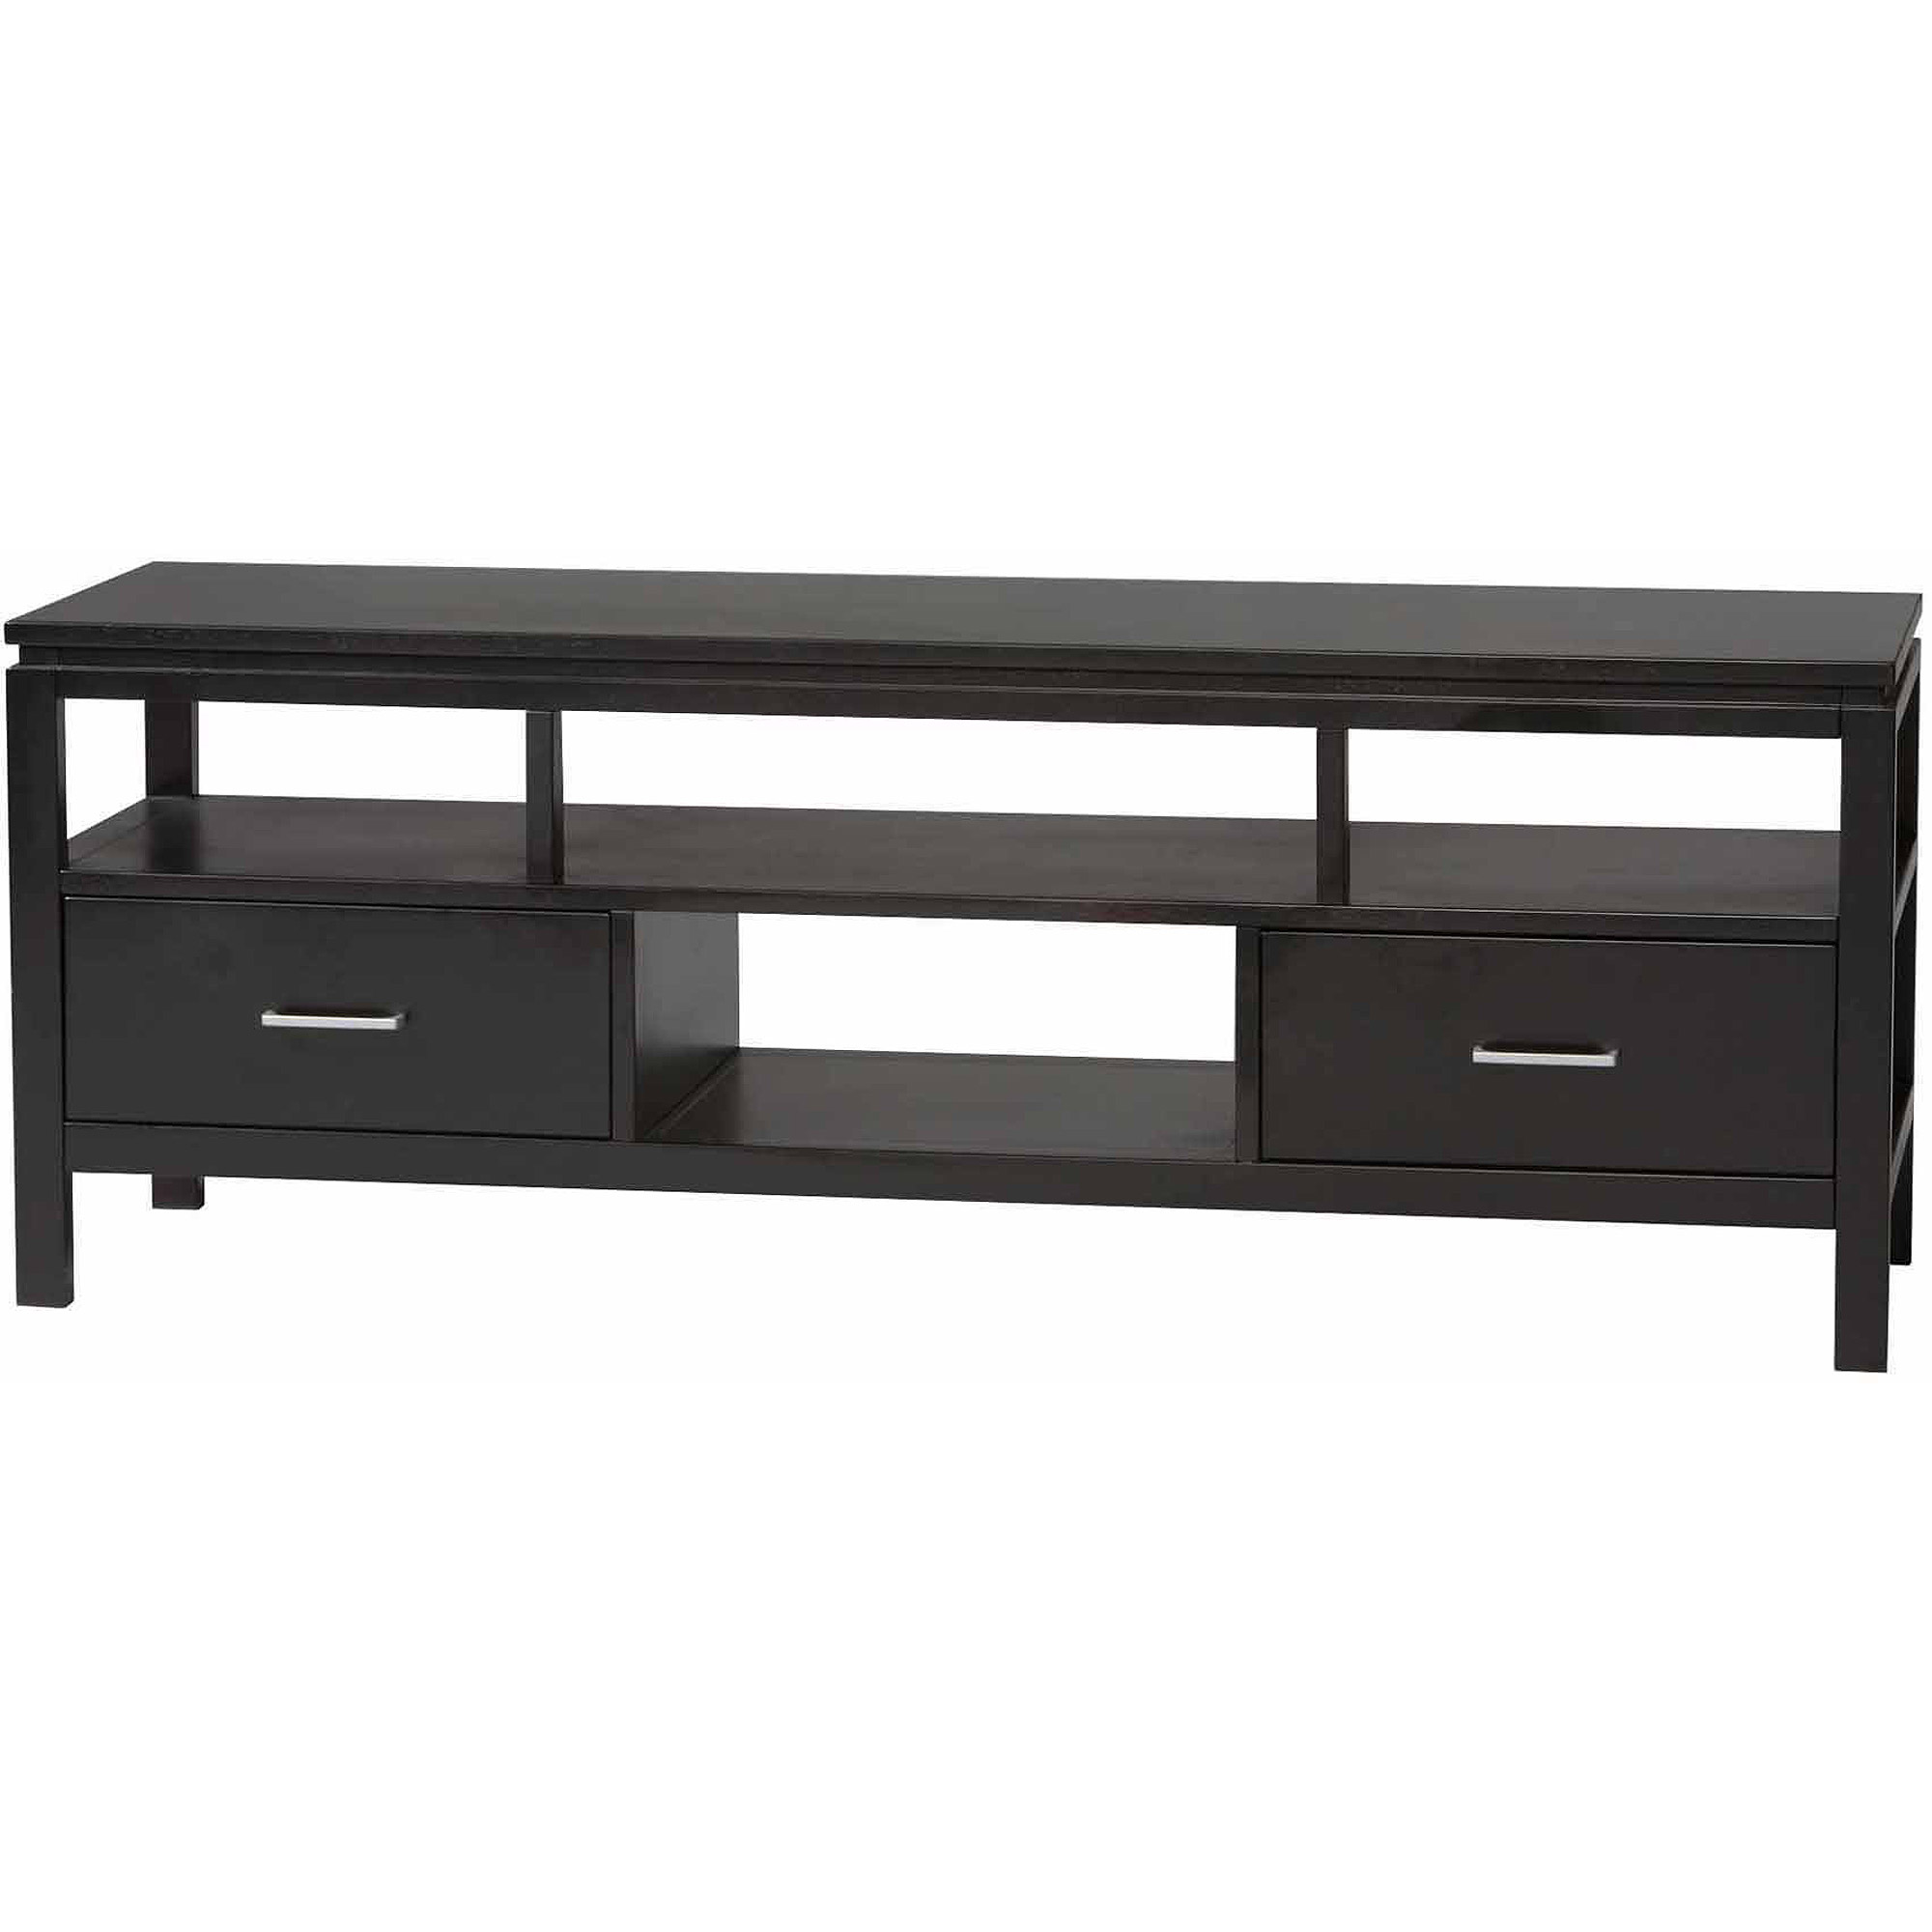 Linon Sutton Black Plasma Tv Center For Tvs Up To 54 Inches